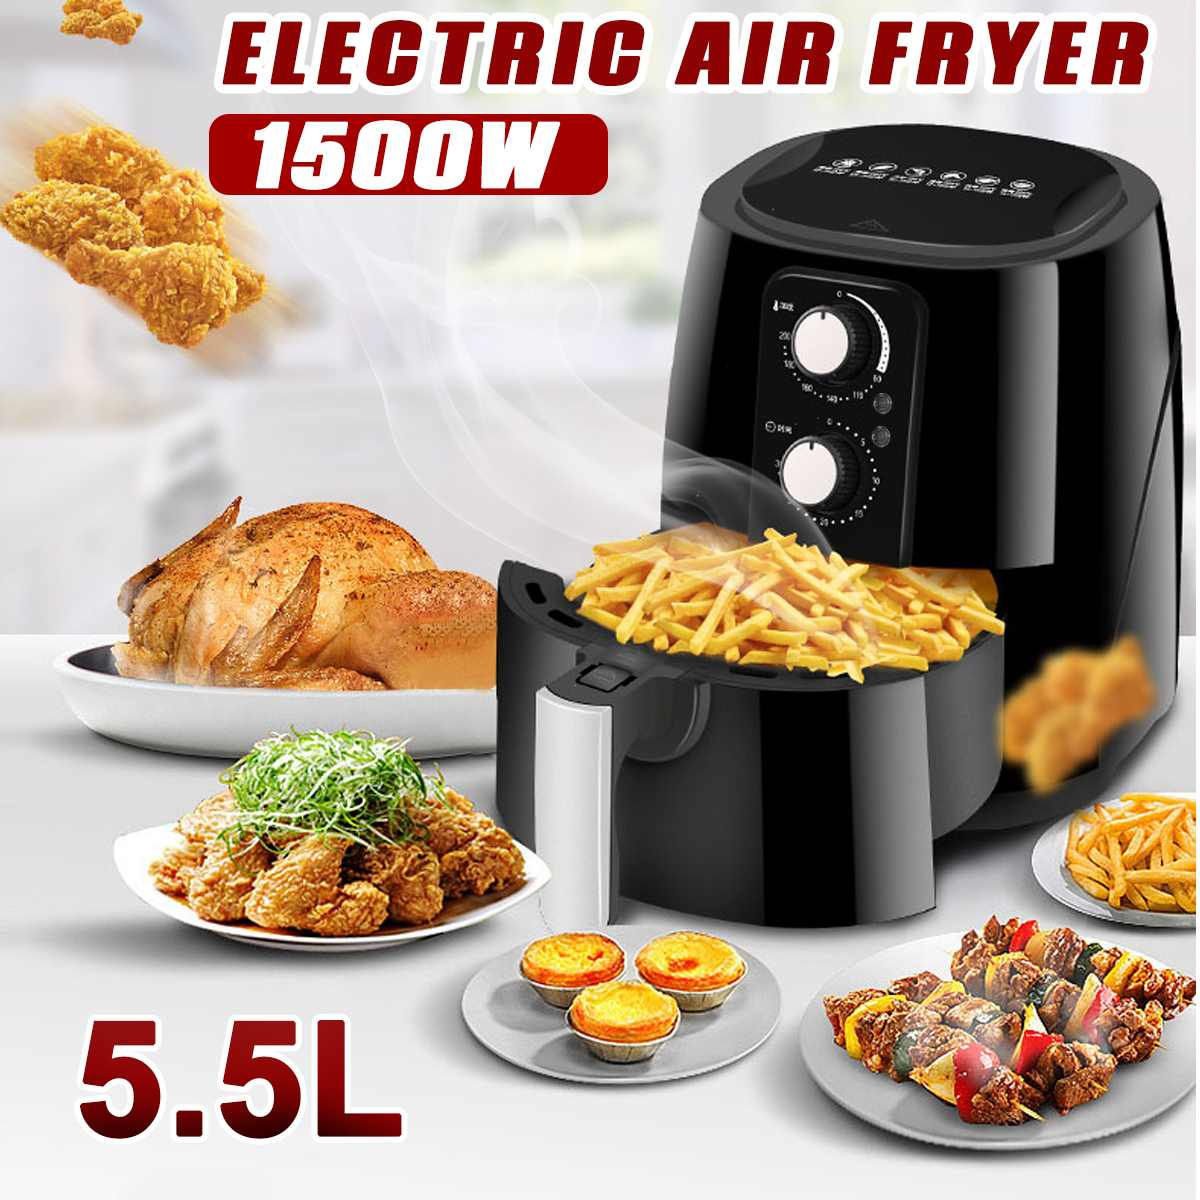 5.5L 1500W 220V Multifunction Air Fryer Oil free Health Fryer Cooker Smart Touch LCD Deep Airfryer Pizza Fryer for French fries